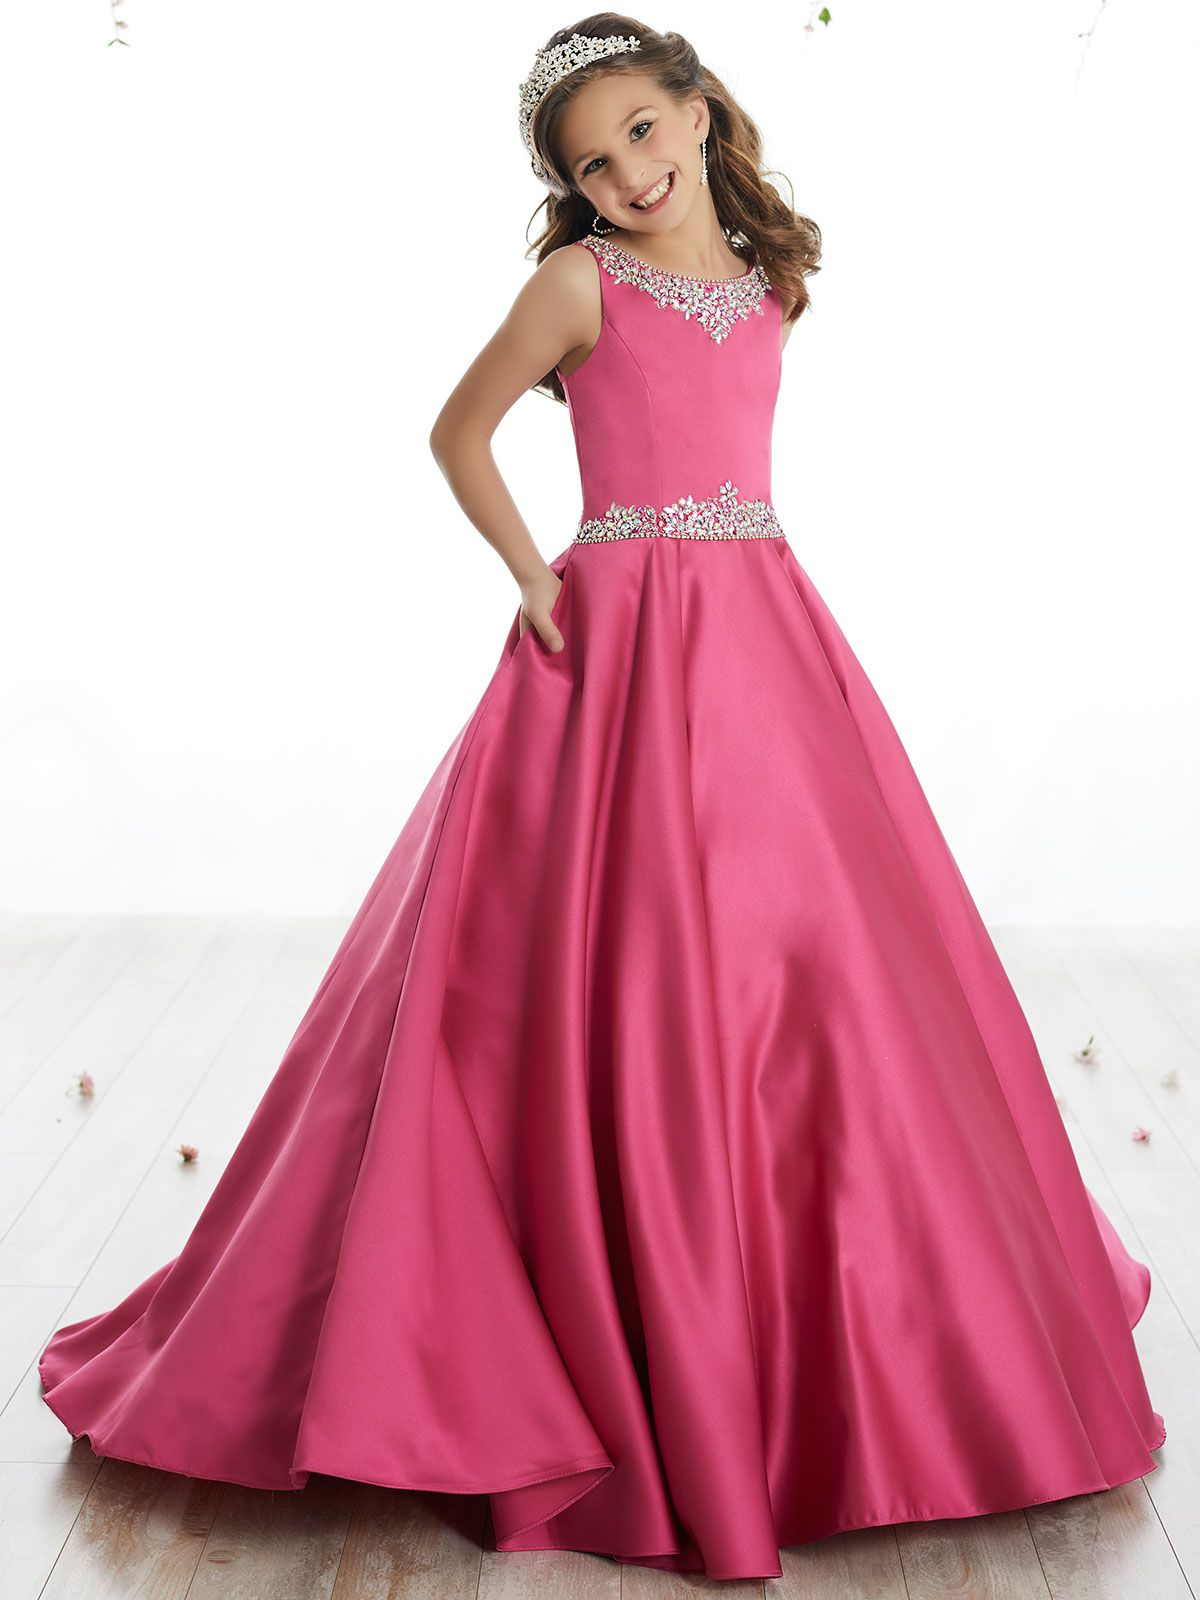 Tiffany Princes 13506 Scoop Neckline Pageant Dress | Pinterest ...